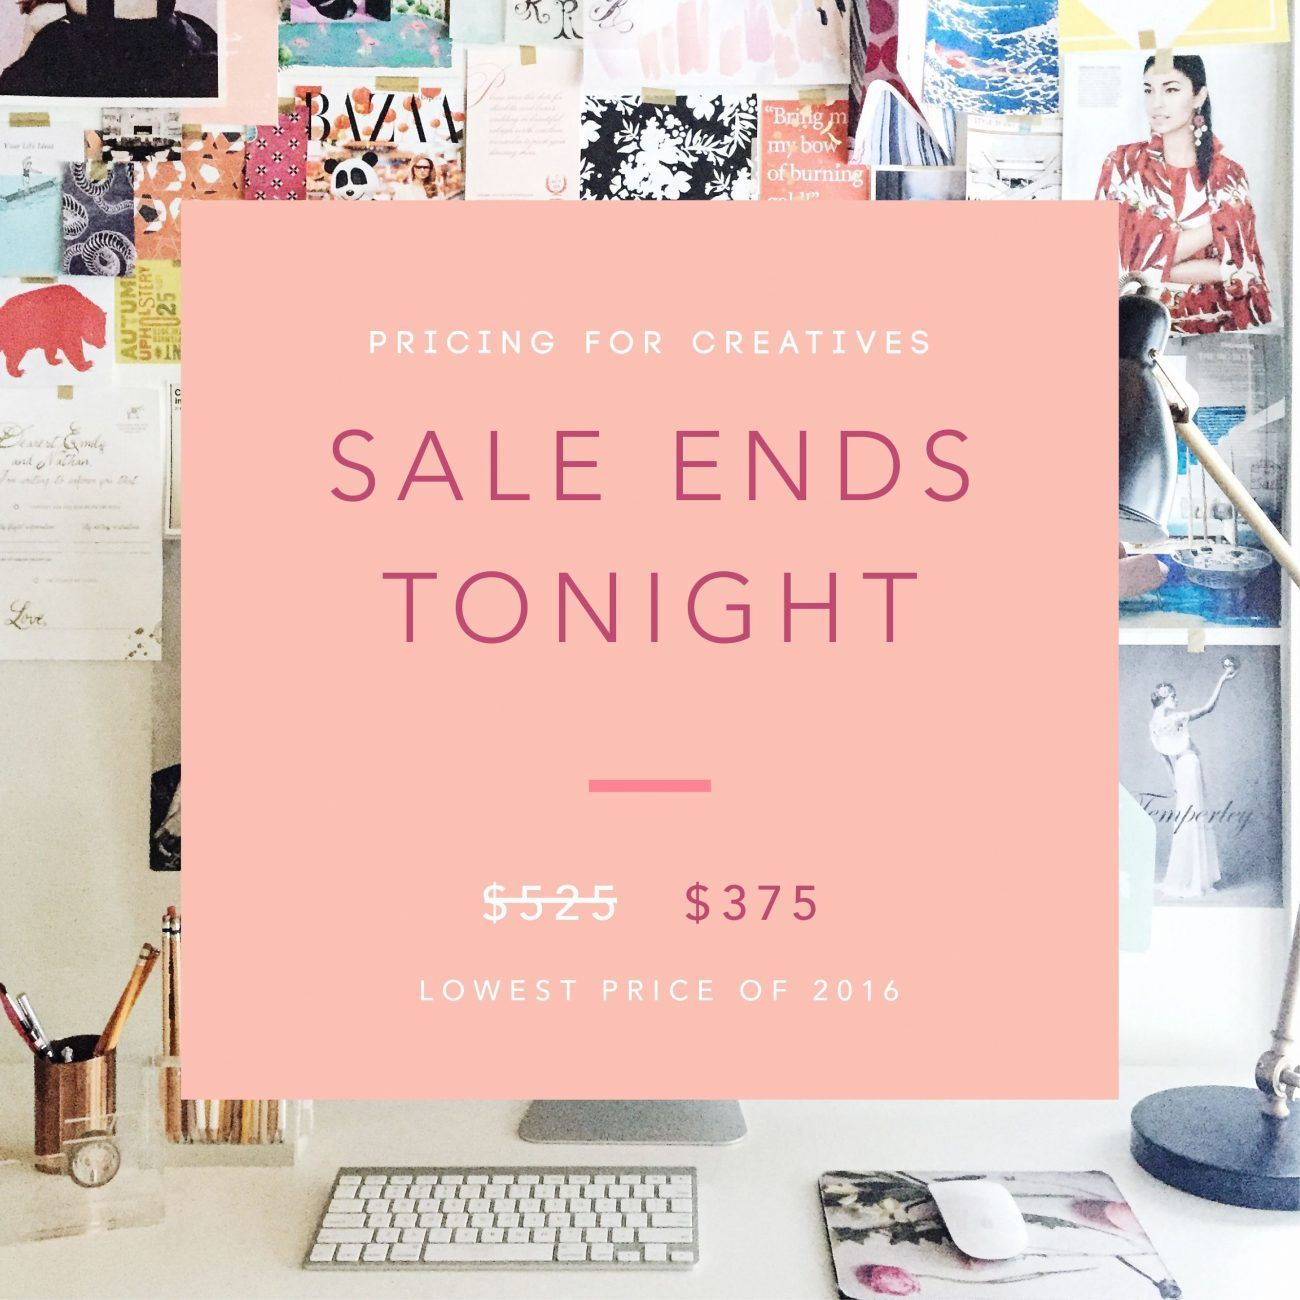 FINAL DAY: Lowest price of 2016 for Pricing For Creatives